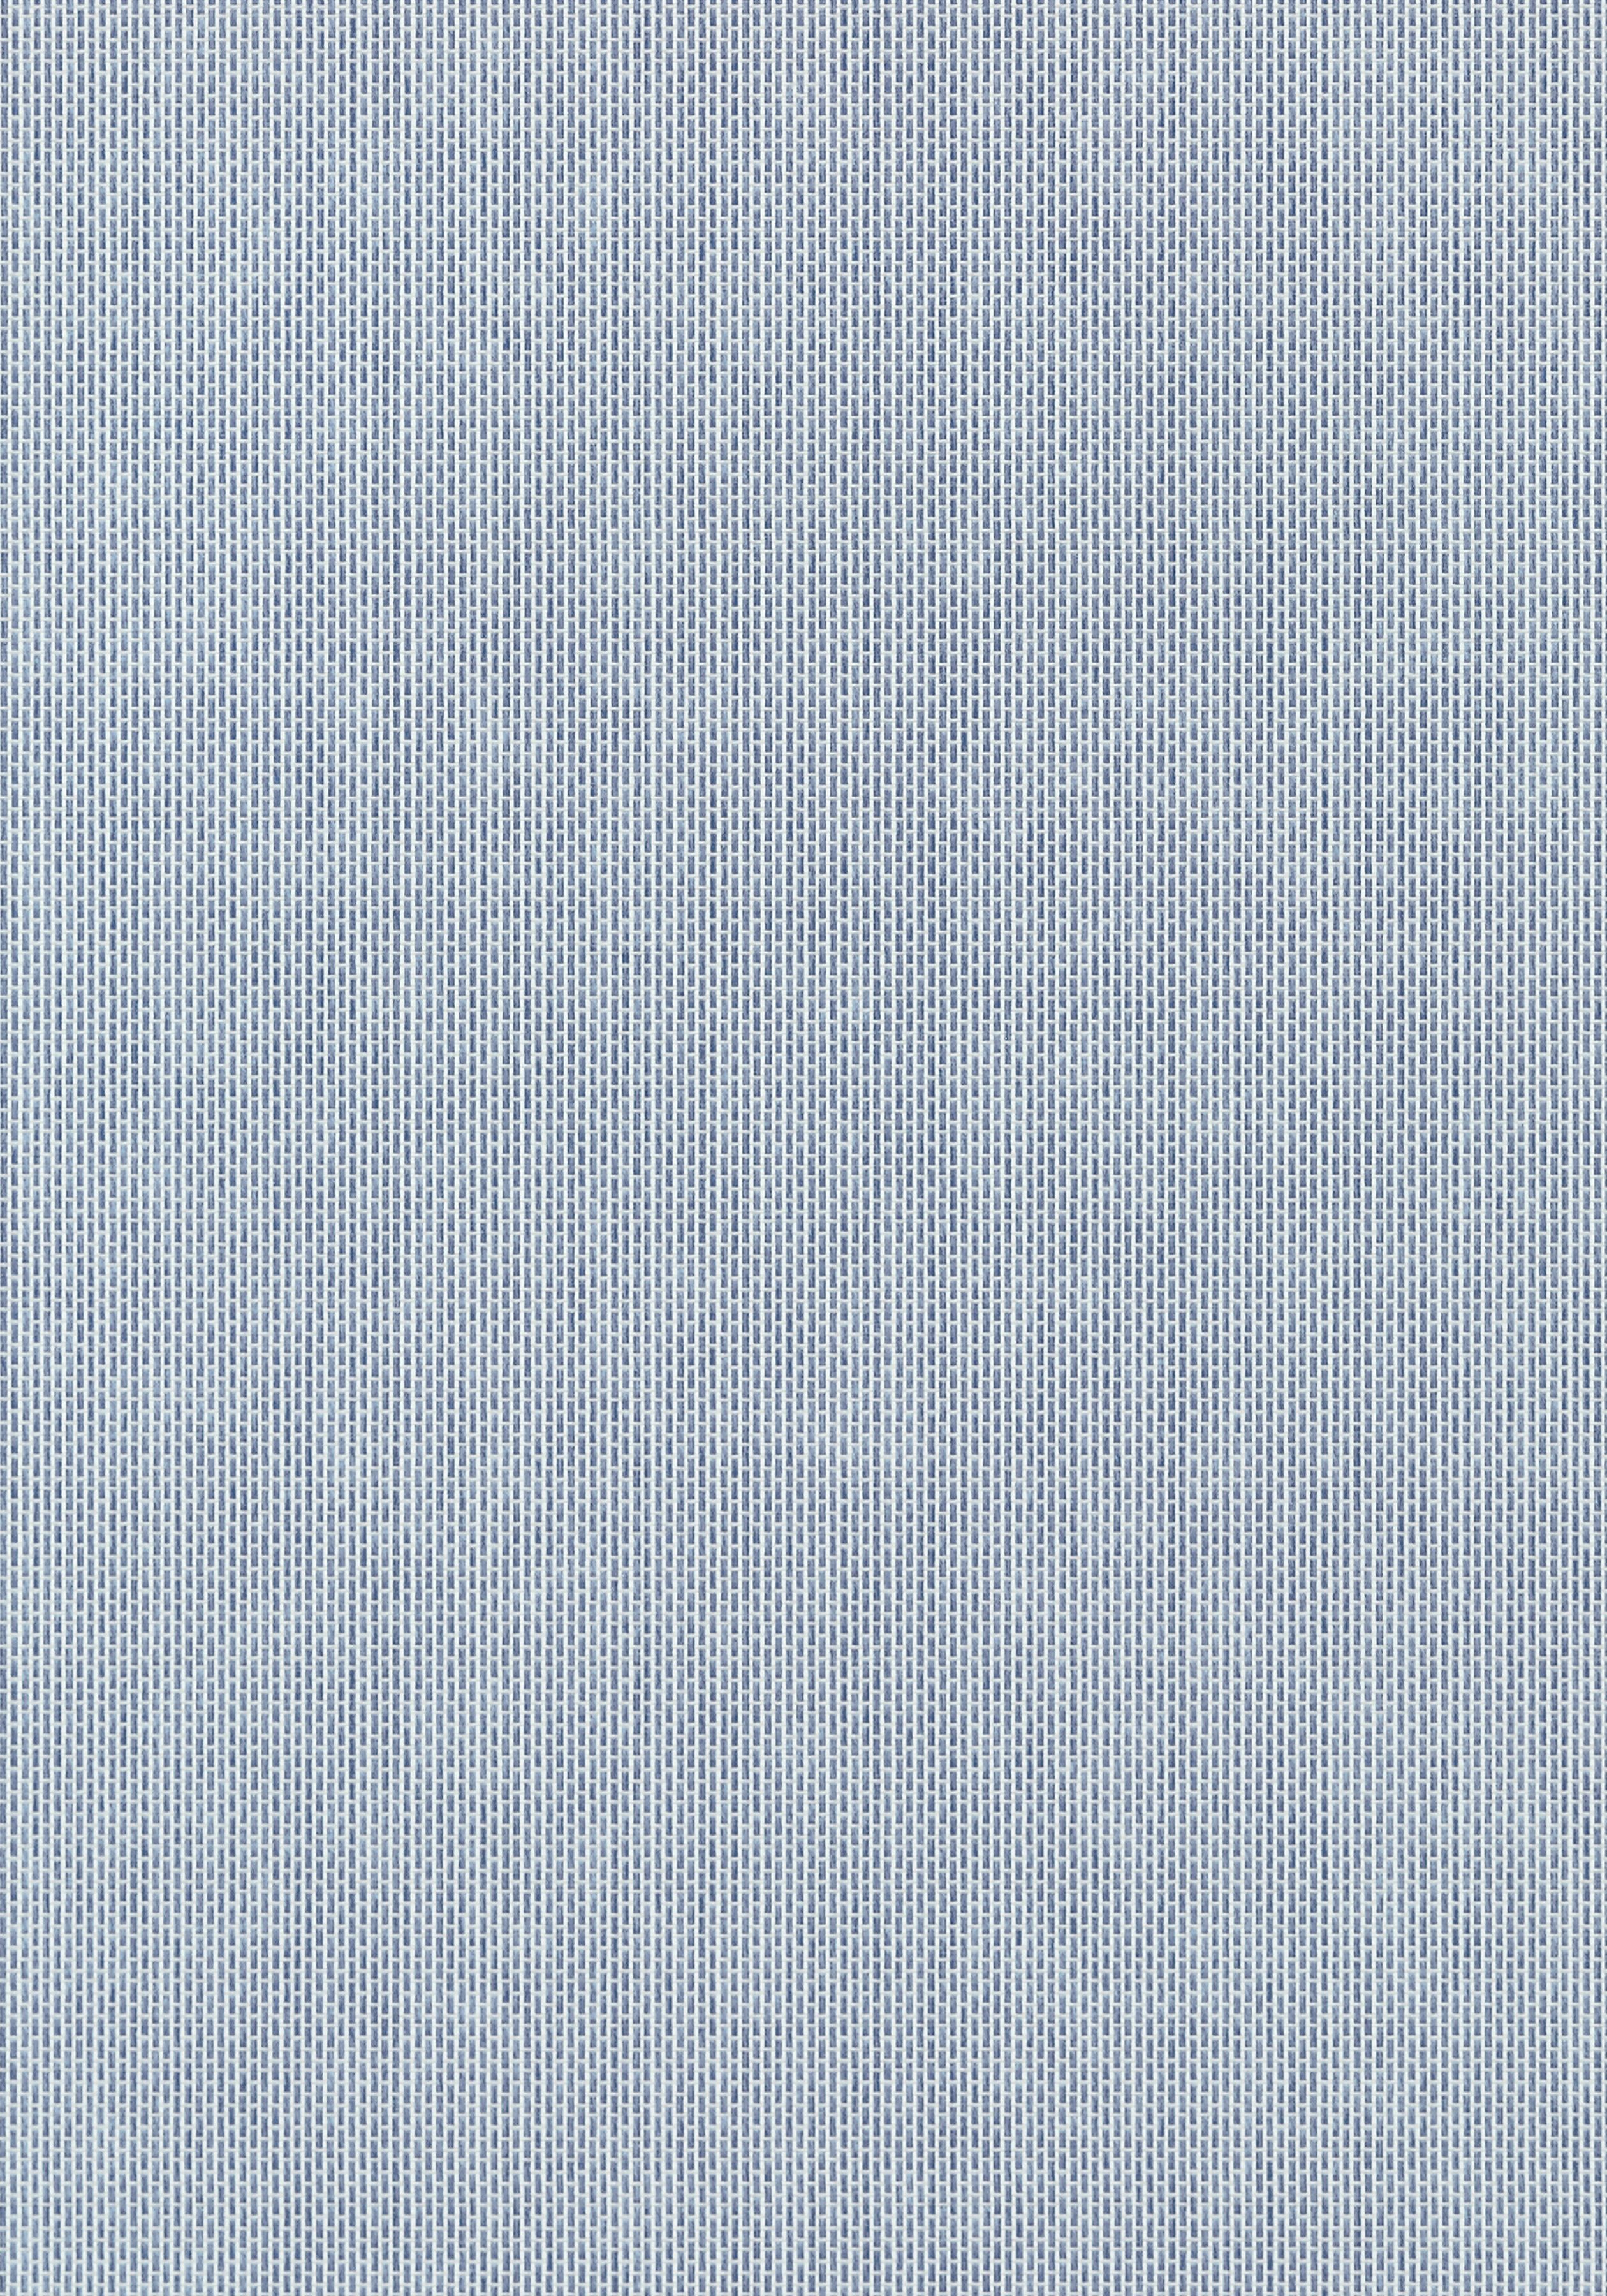 LARGO WEAVE, Navy, T75508, Collection Dynasty from Thibaut